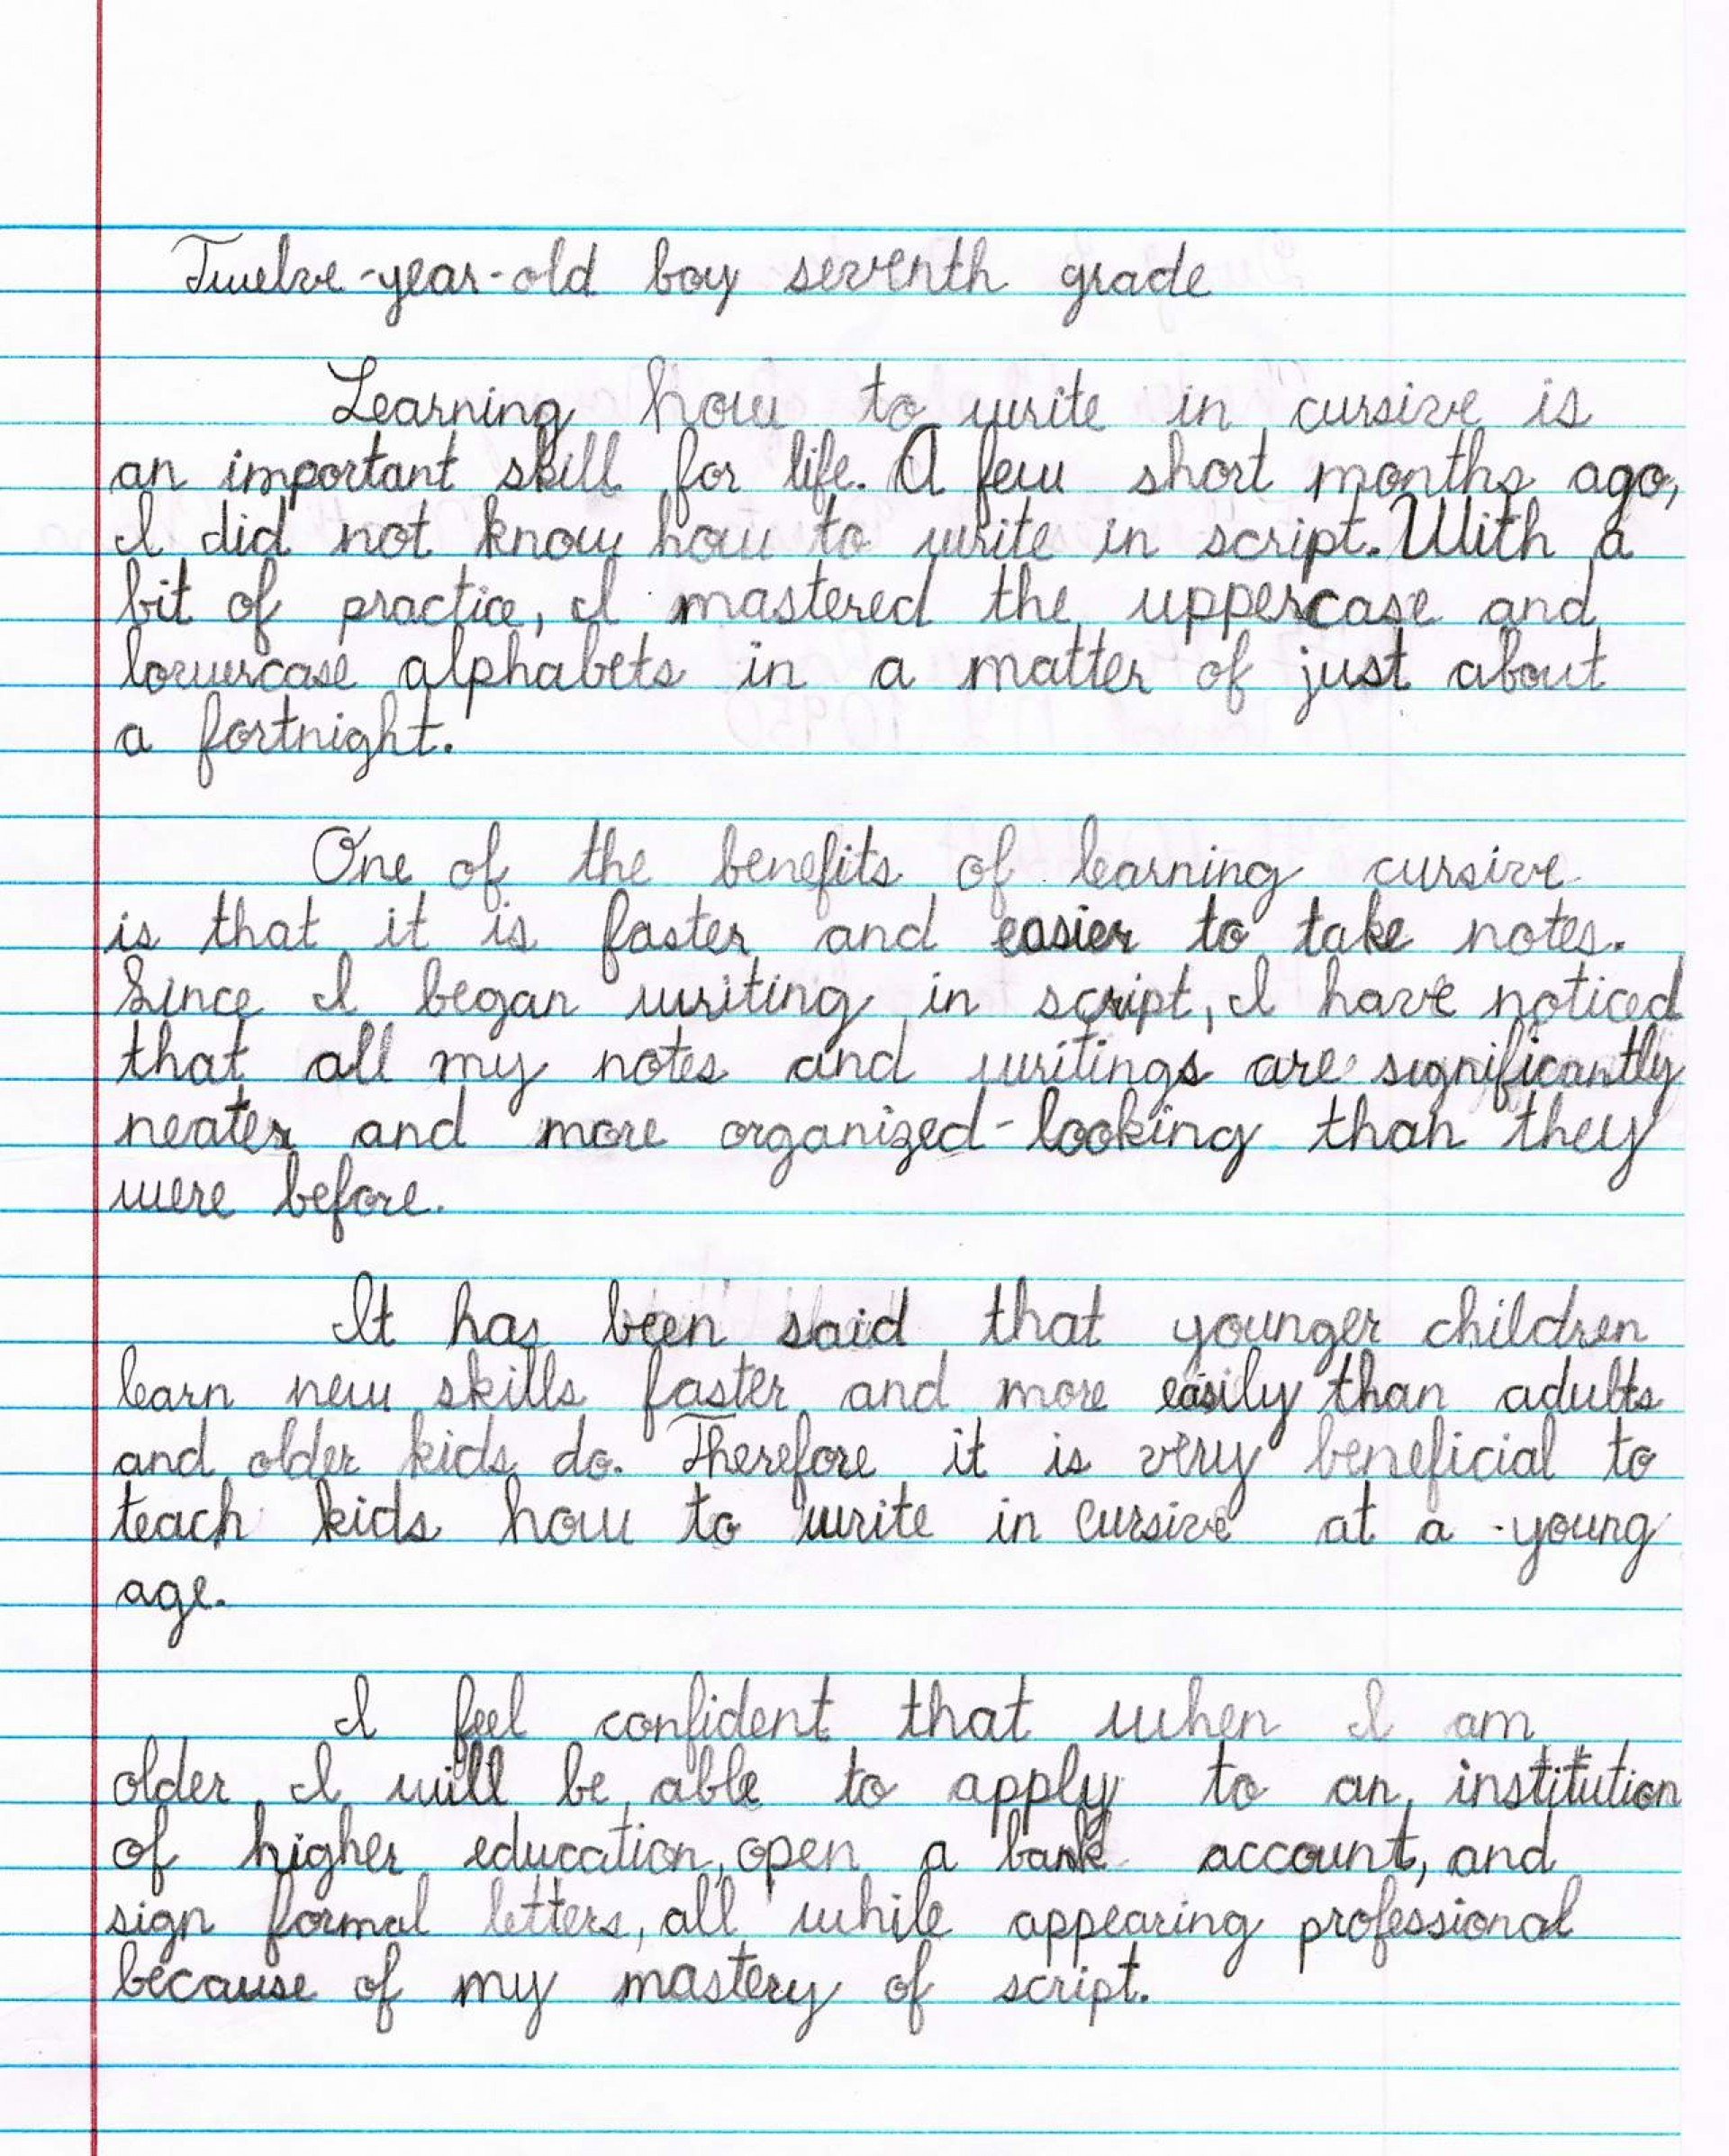 014 Ep 150609965qu003d100 Essay On Handwriting Fearsome Short Importance Of Good In Hindi Gujarati 1920